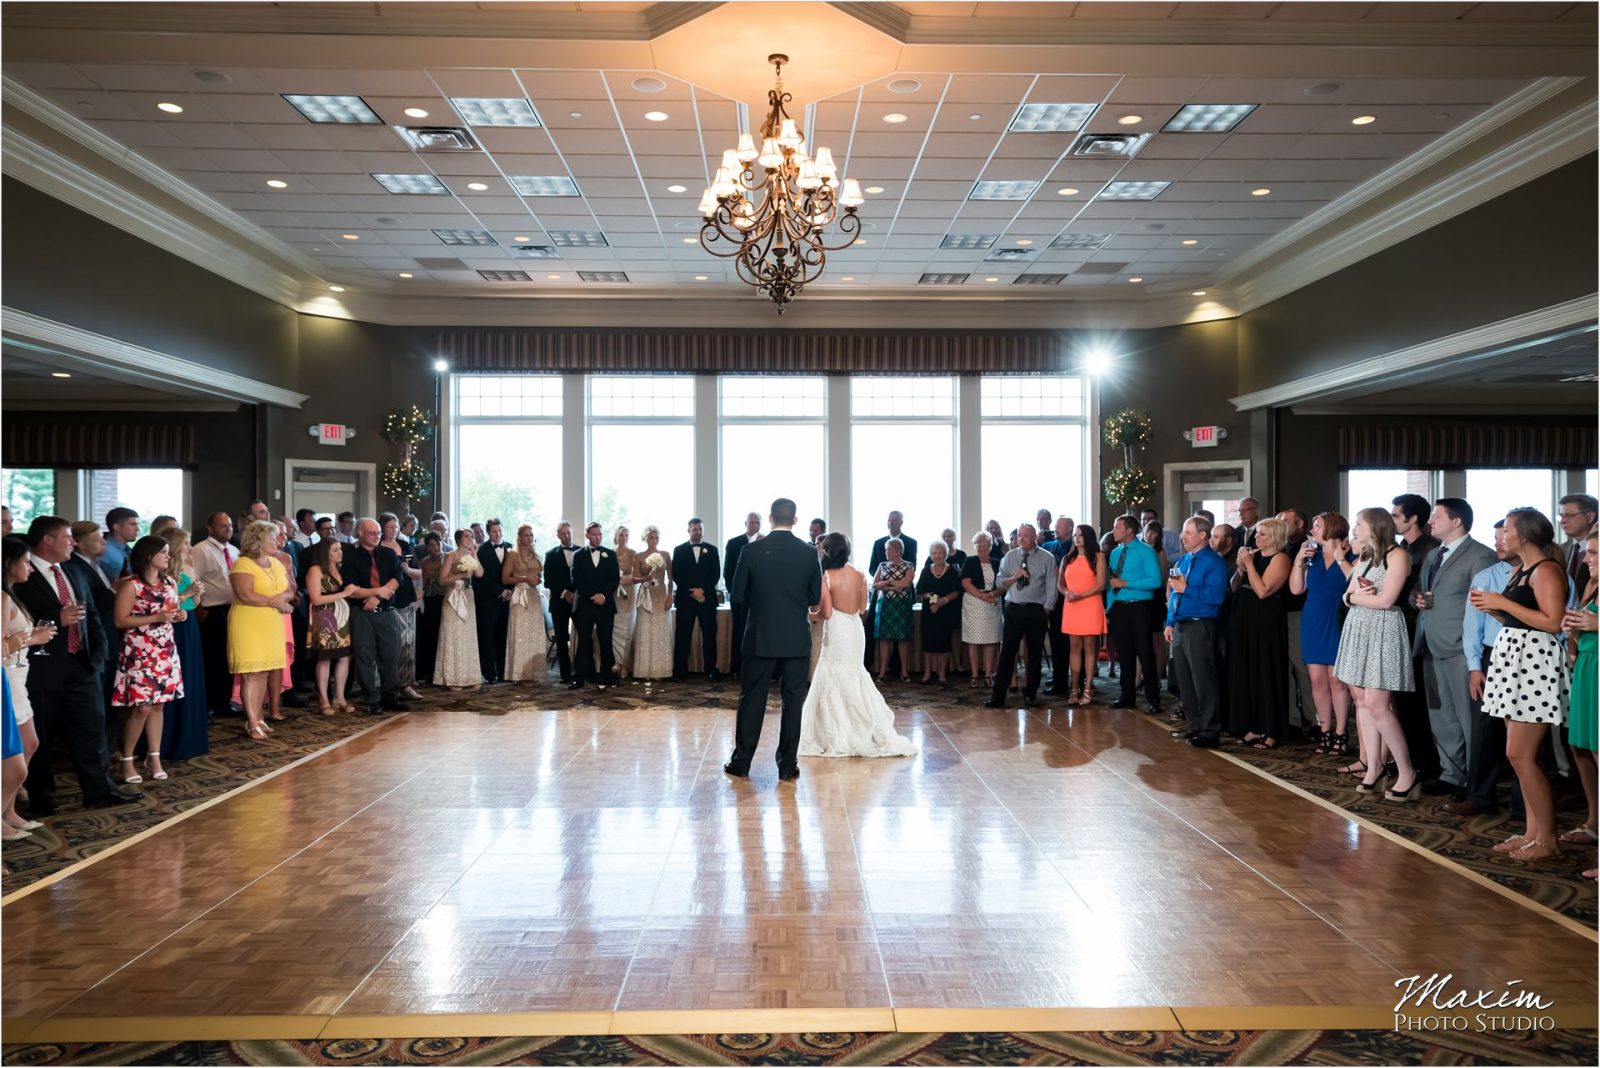 Drees Pavilion Covington Kentucky Wedding Reception Dance